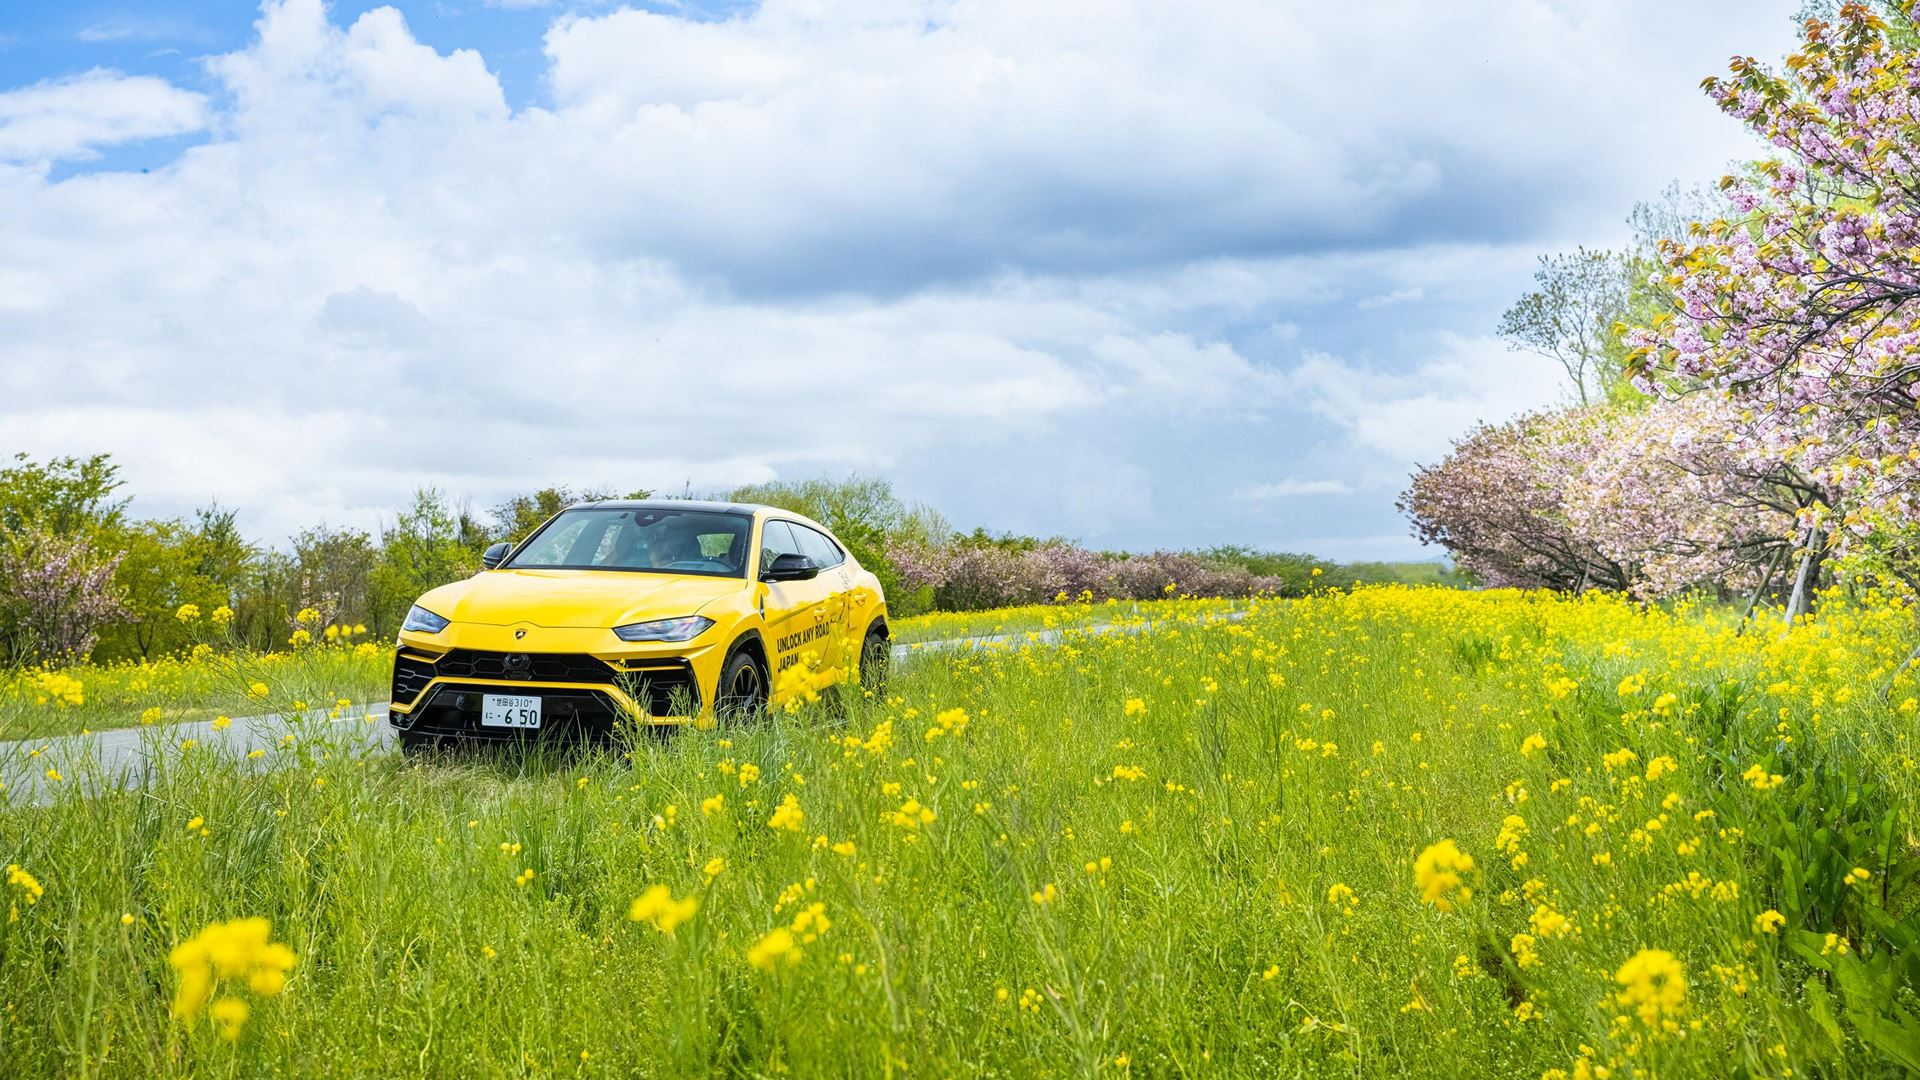 """""""UNLOCK ANY ROAD JAPAN"""" Urus expedition over 6.500 Km across Japan - Image 2"""